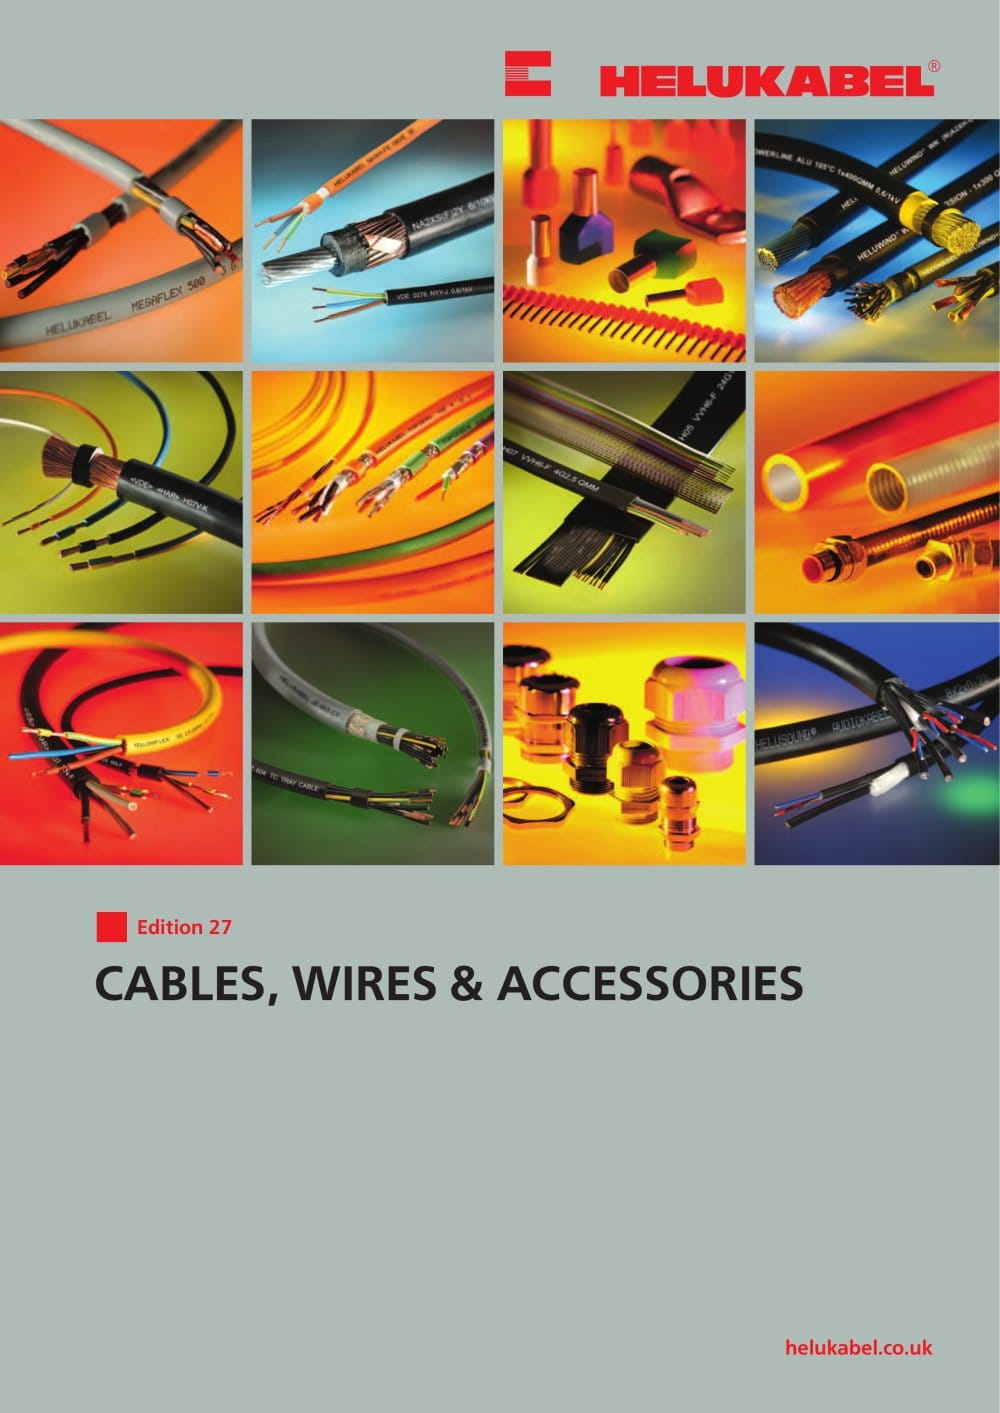 Cables, Wires & Accessories - Edition 27 - HELUKABEL - PDF Catalogue ...